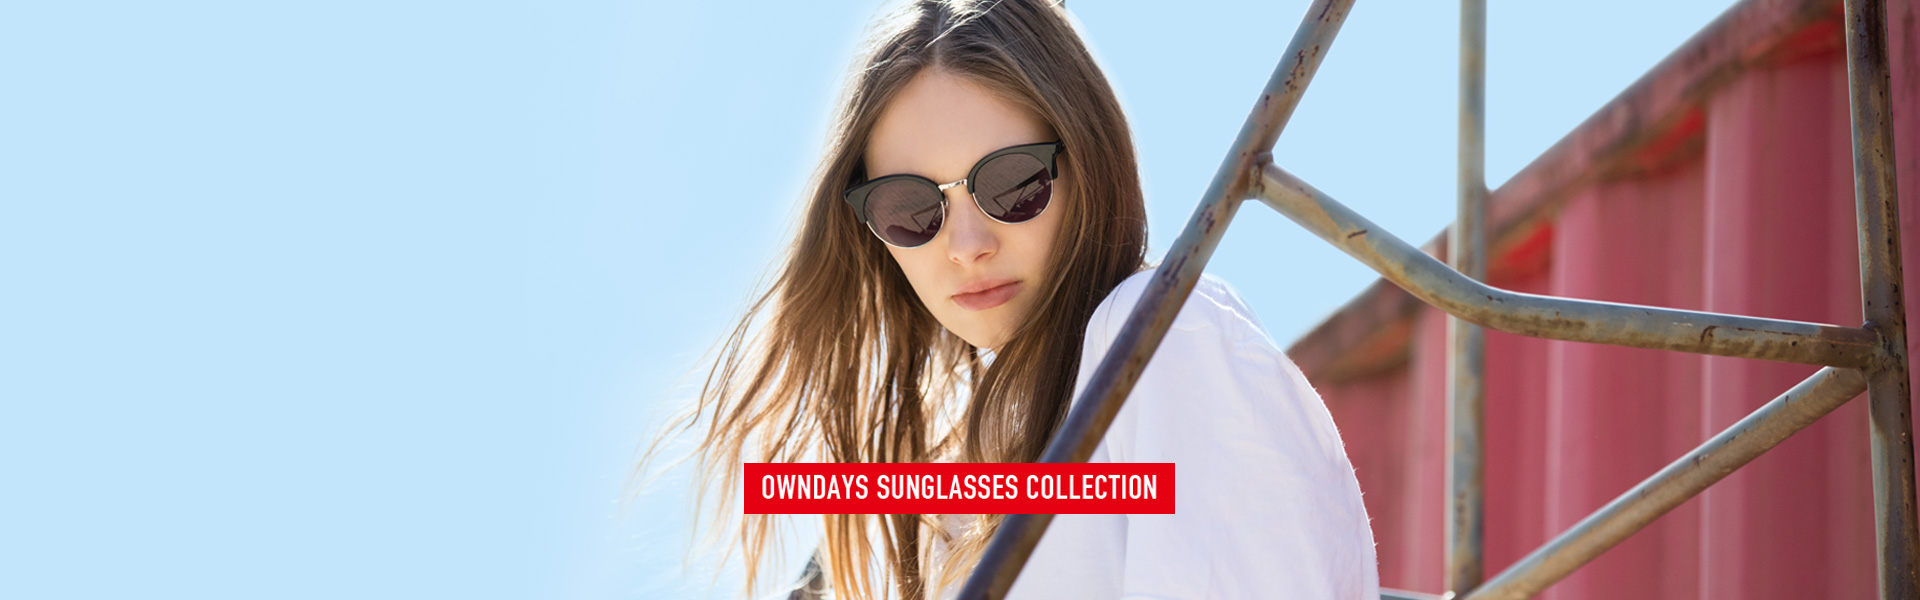 OWNDAYS SUNGLASSES COLLECTION 2017